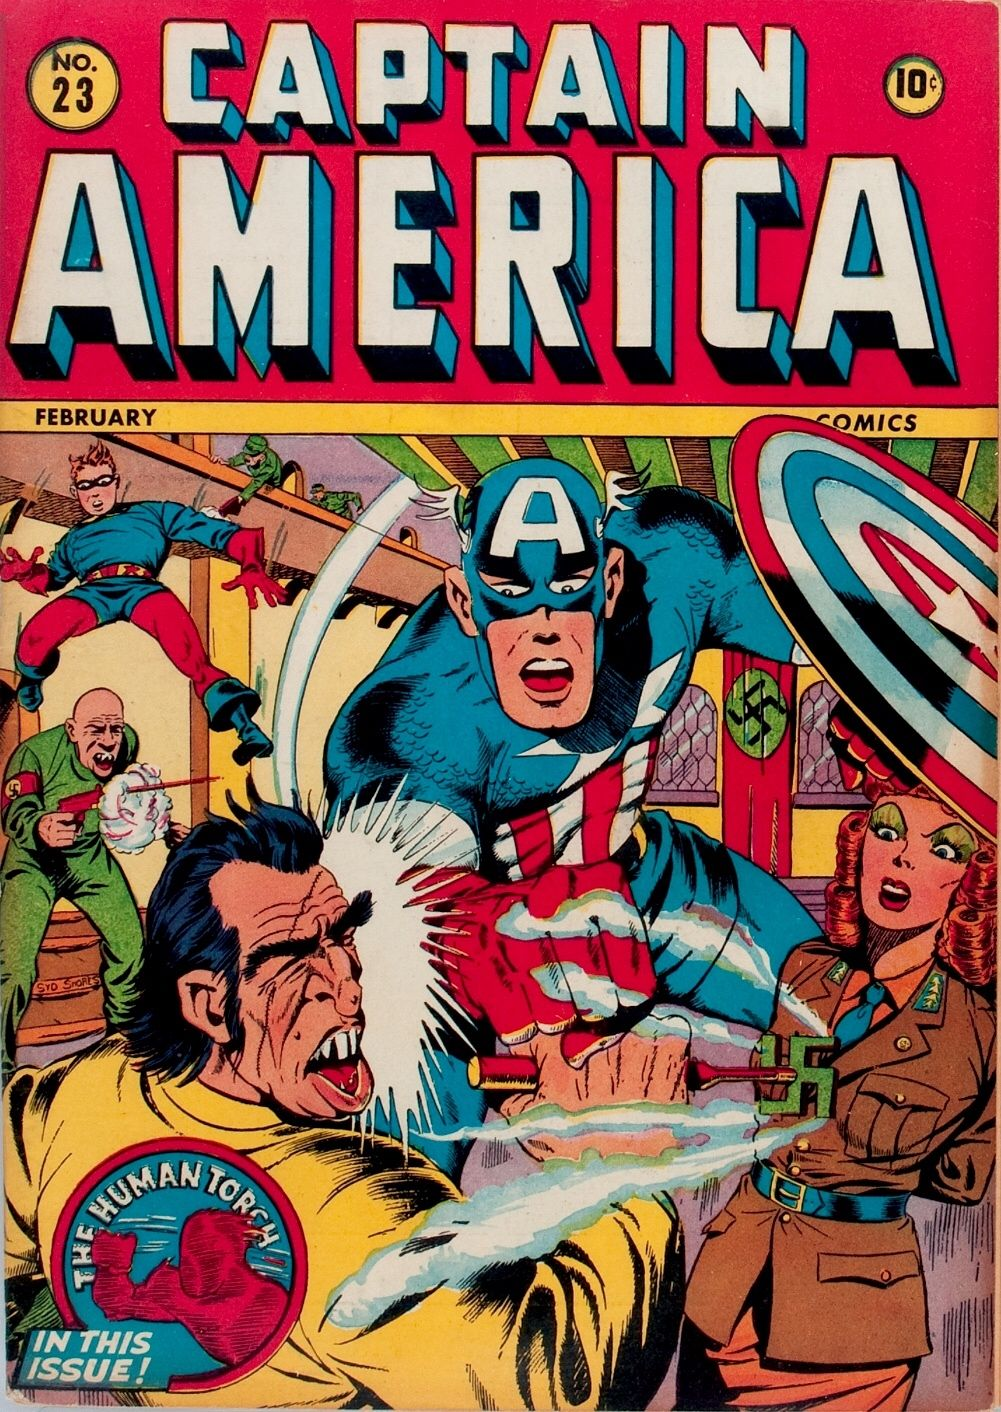 Pin by Herb Kinney on Marvel Comics | Captain america comic, Comic